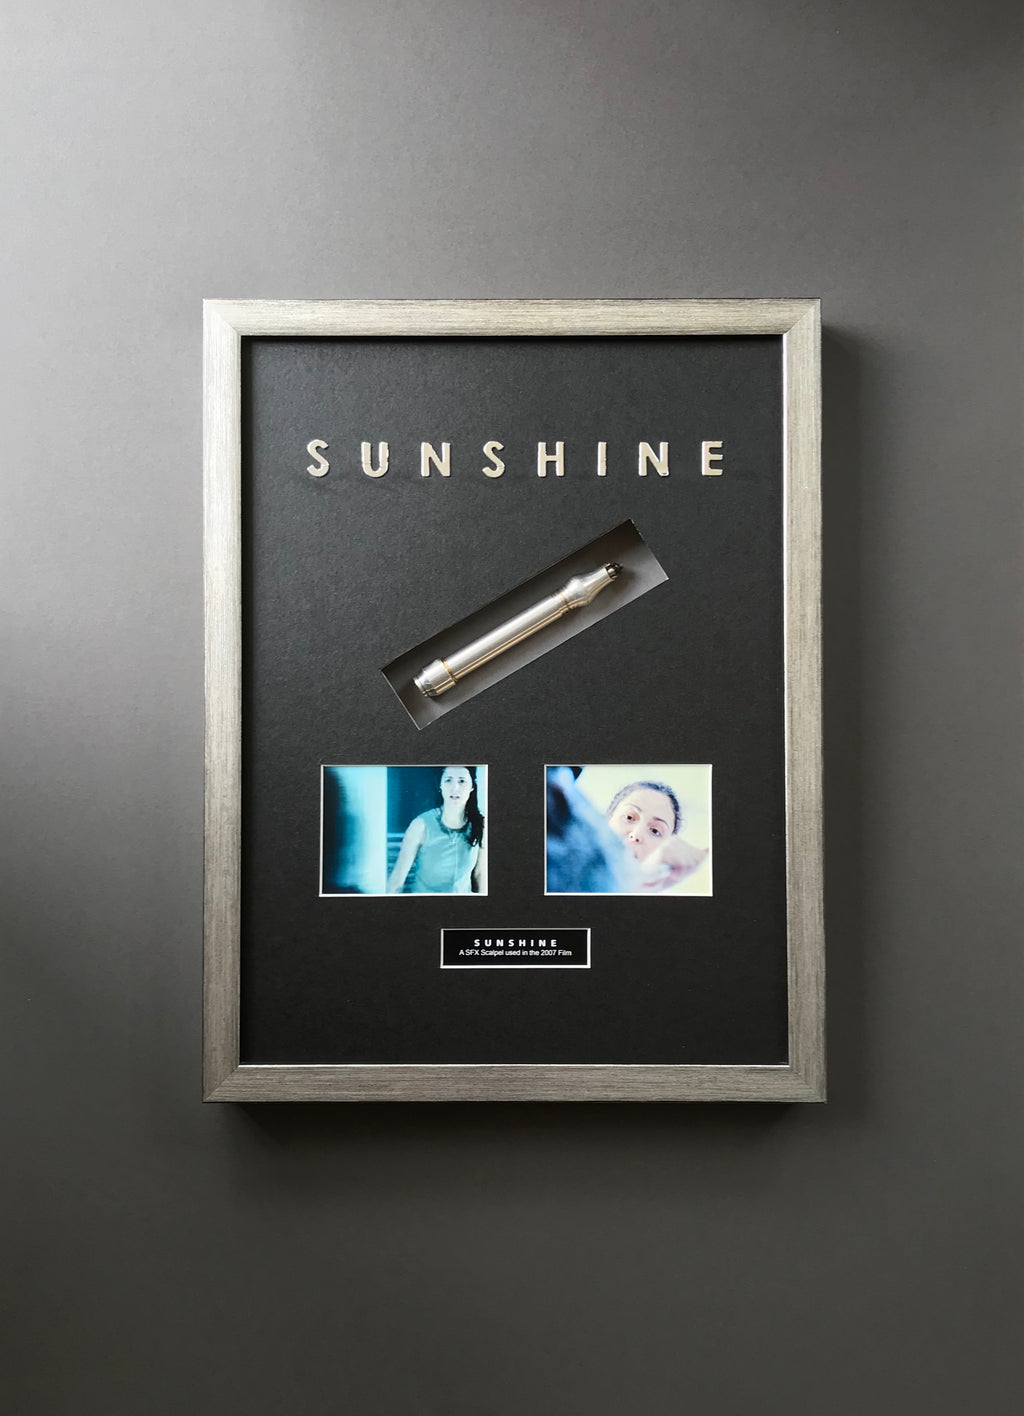 Sunshine (2007) - Prop SFX Scalpel